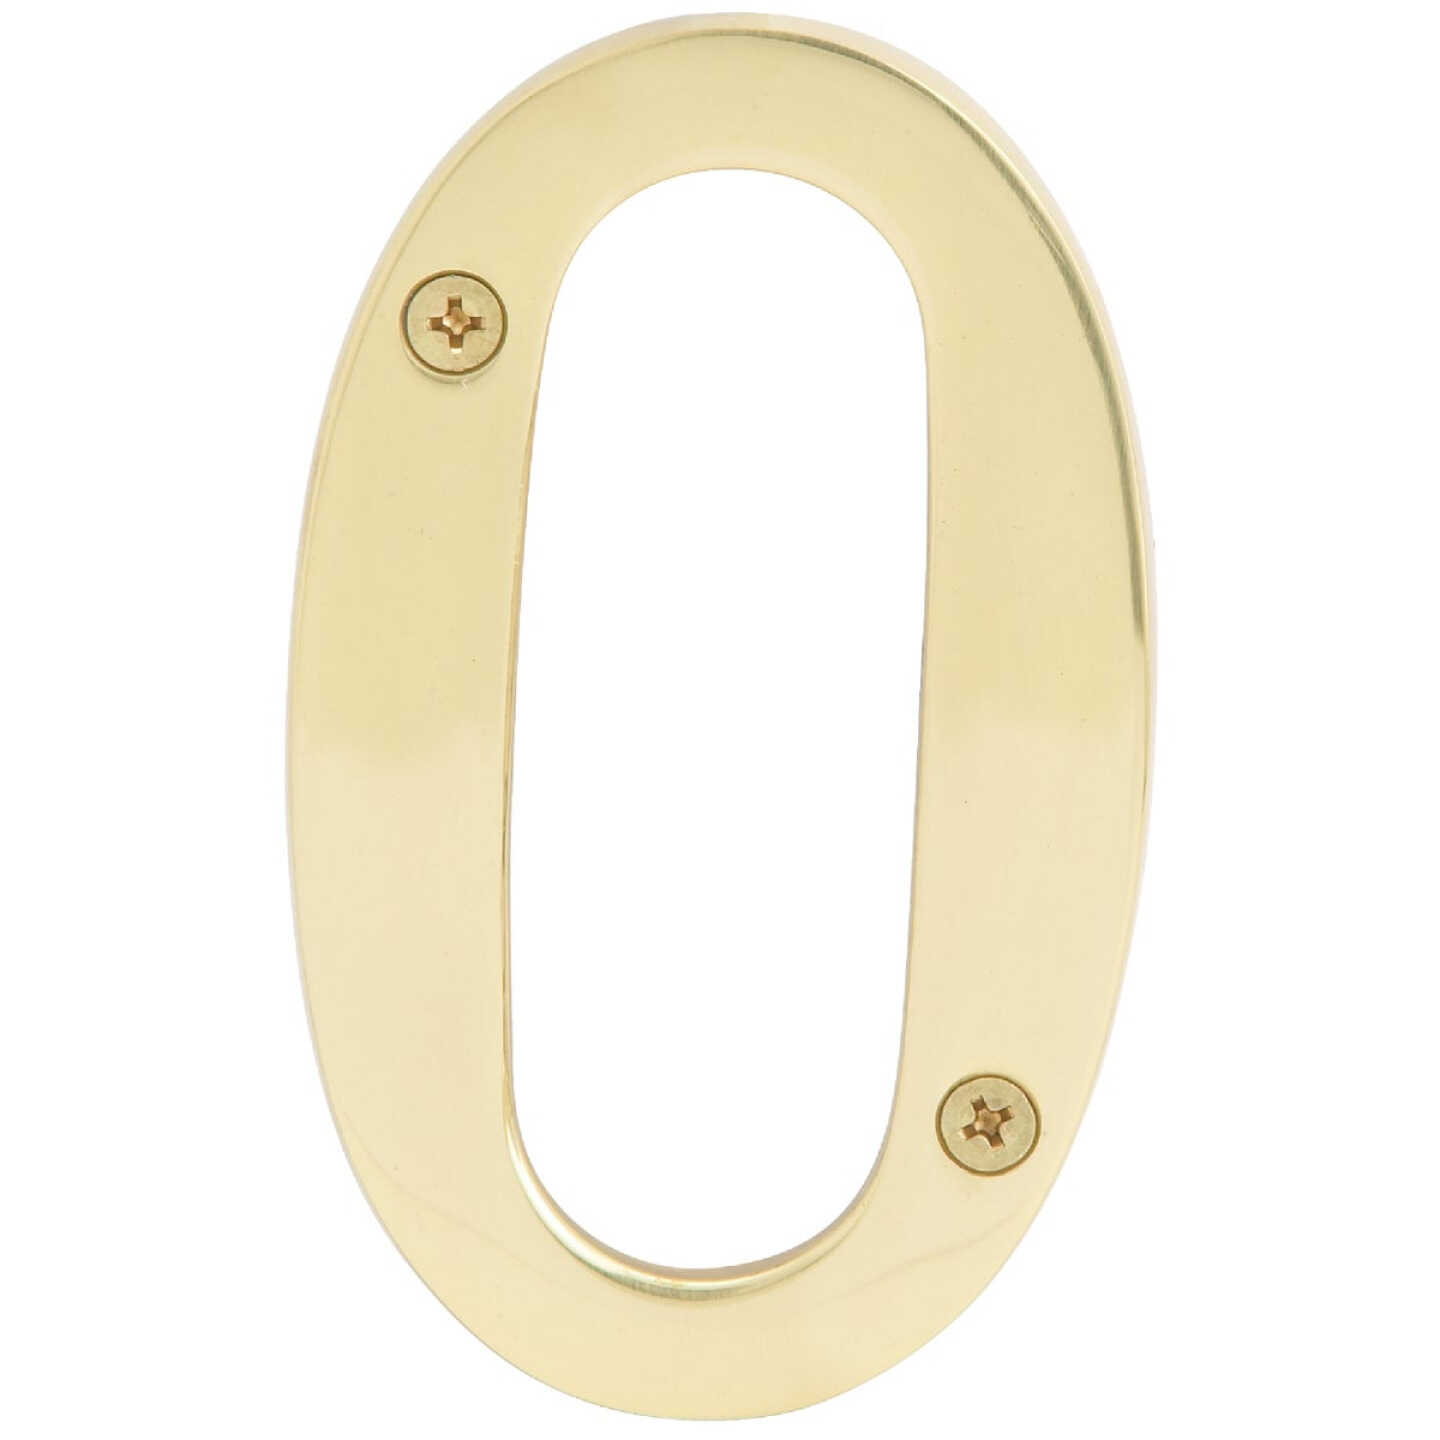 Hy-Ko 4 In. Polished Brass House Number Zero Image 1